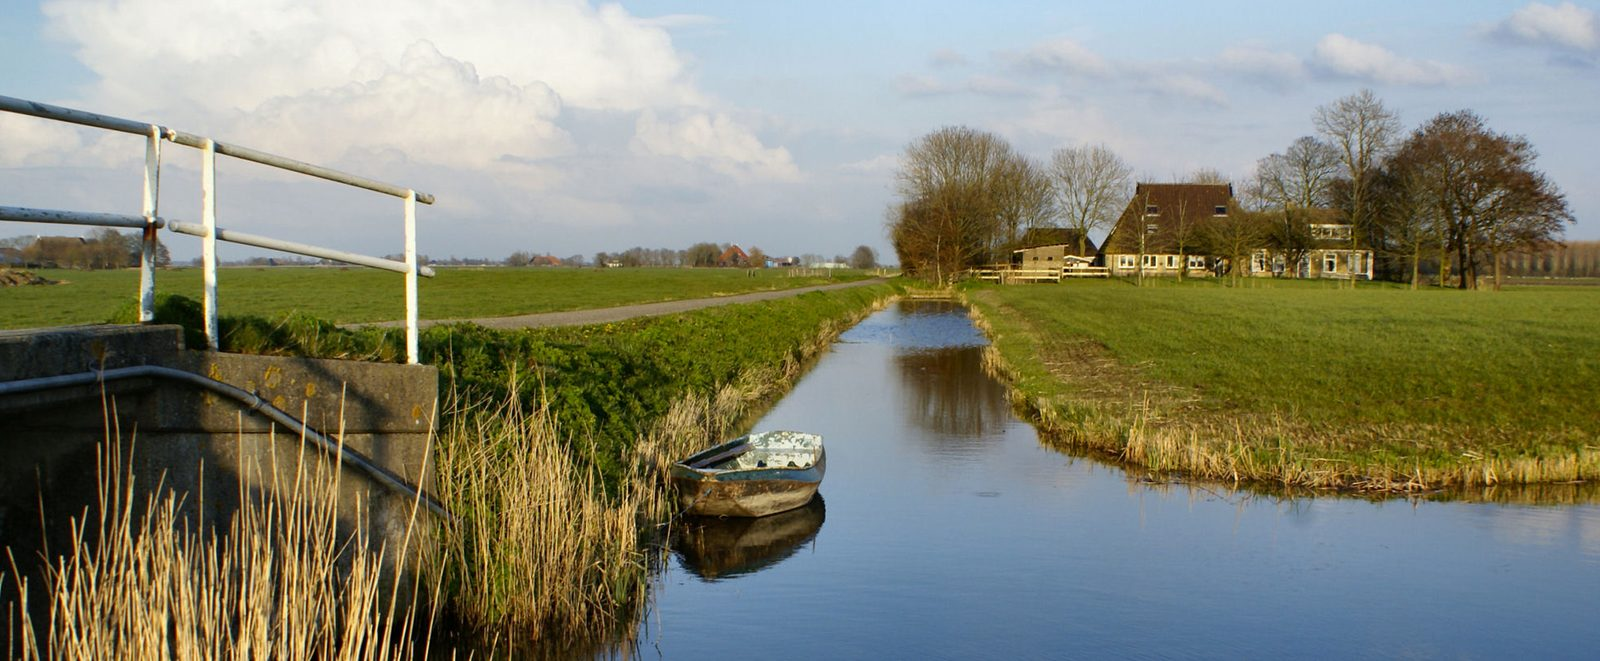 Group accommodations in Friesland